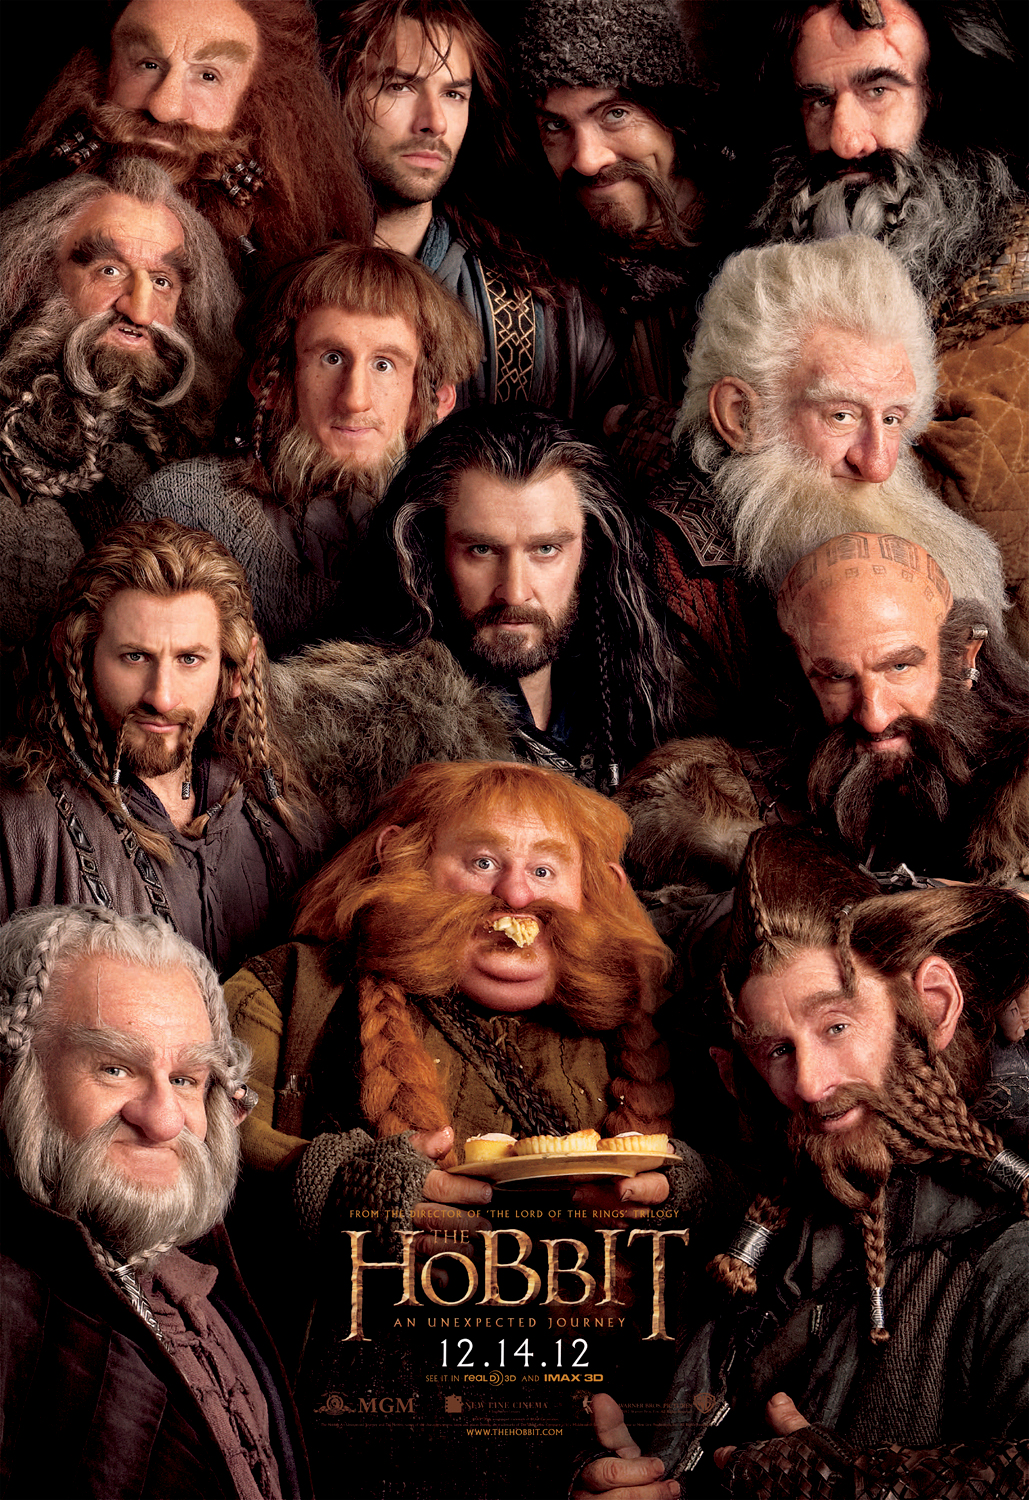 The Hobbit: An Unexpected Journey - Movie Poster #4 (Original)